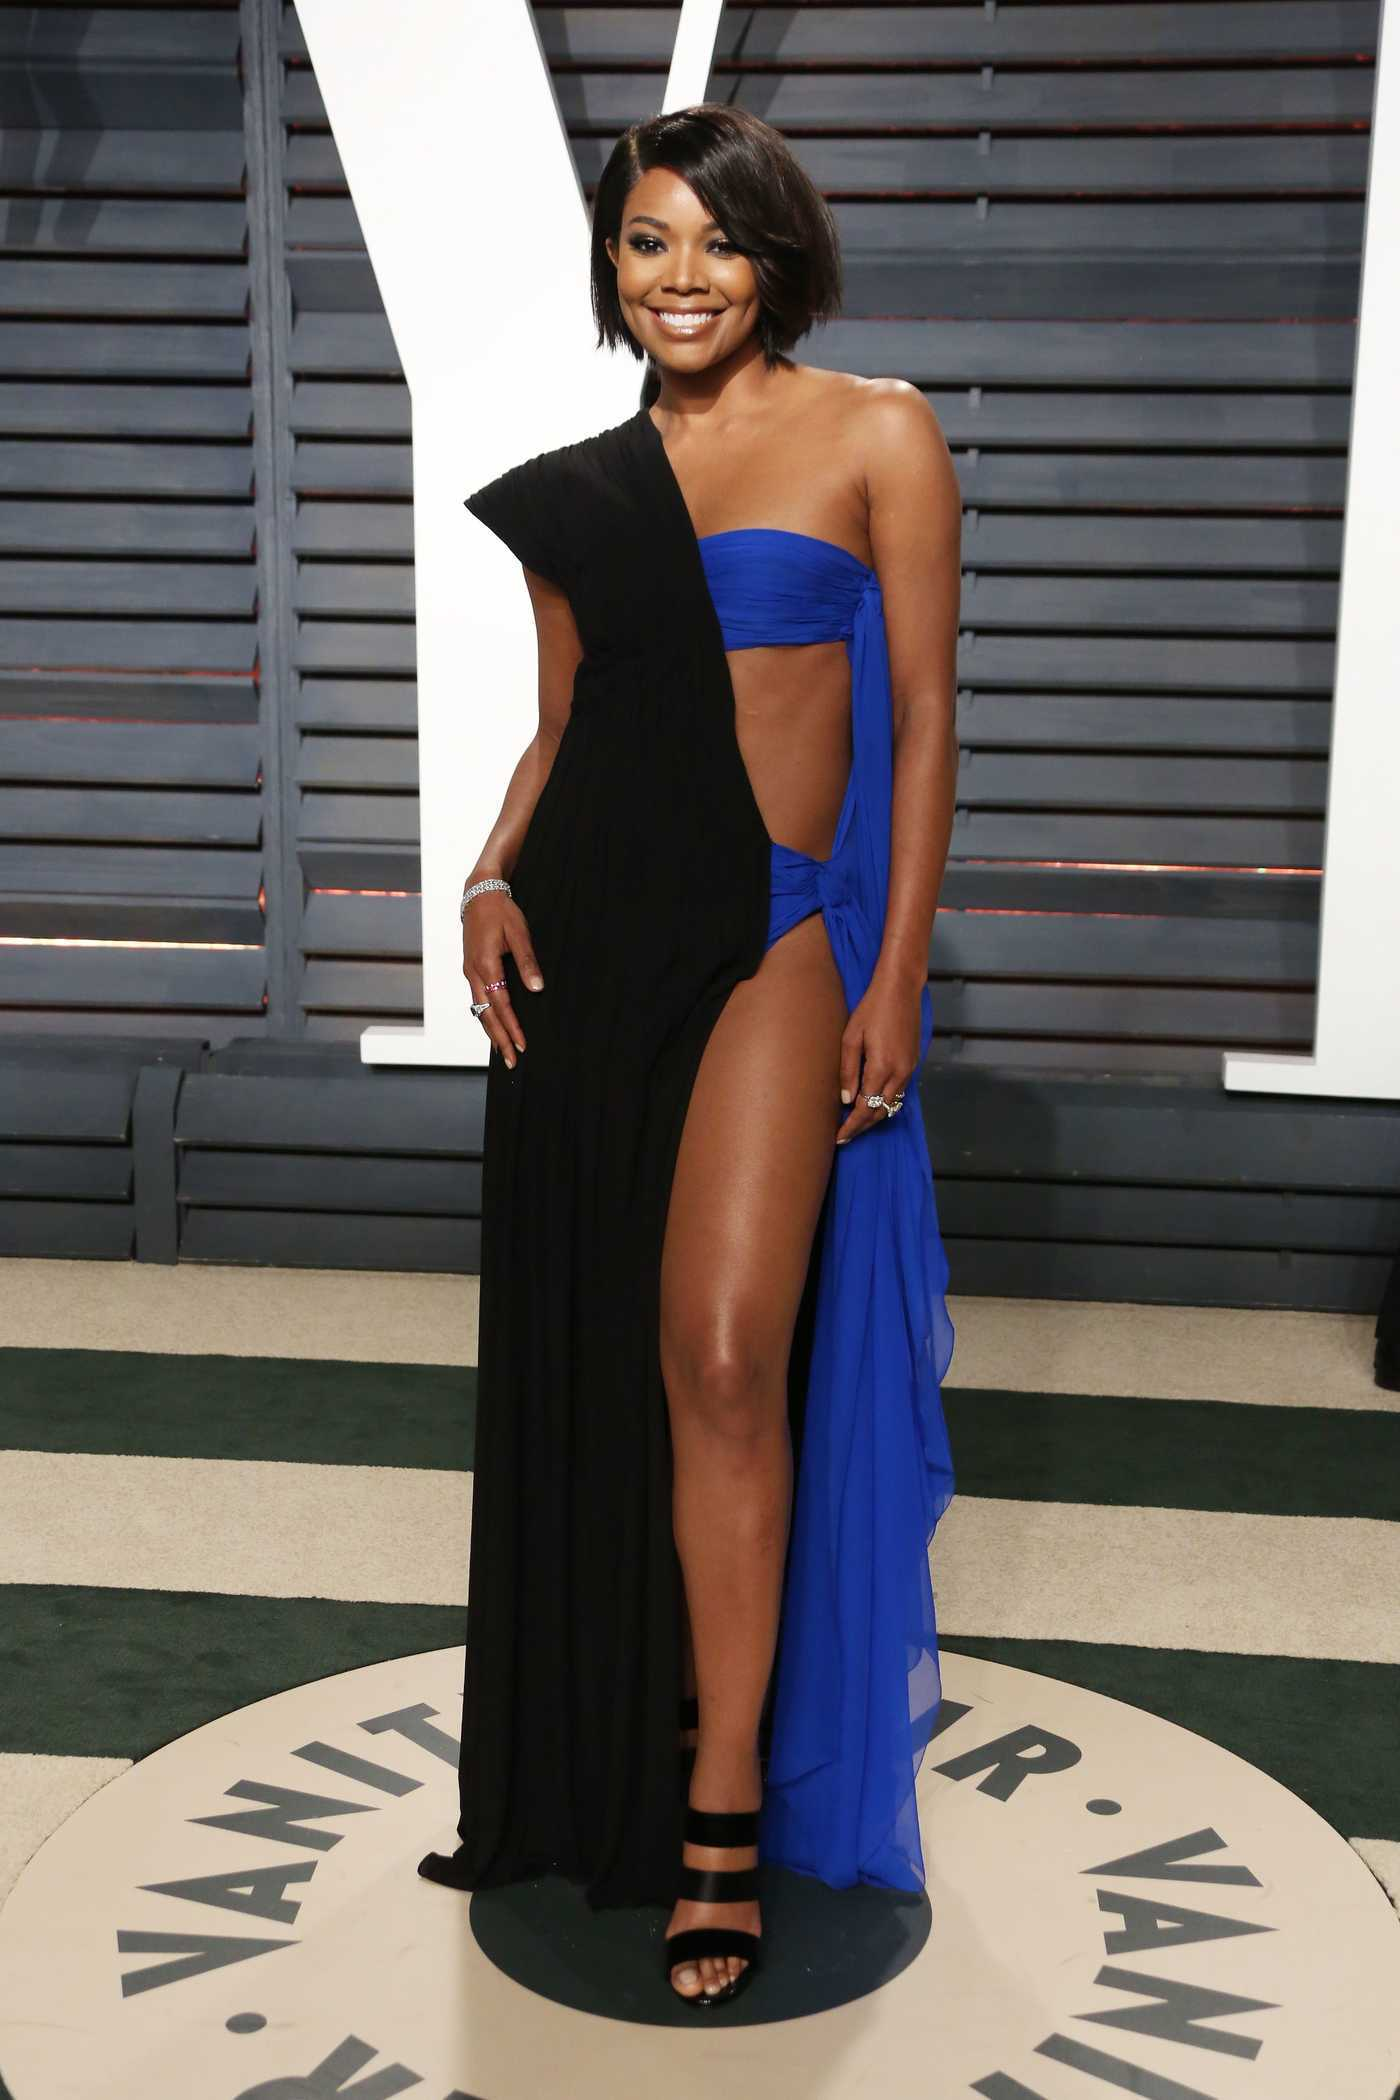 Gabrielle Union at the 2017 Vanity Fair Oscar Party Hosted by Graydon Carter in Beverly Hills 02/26/2017